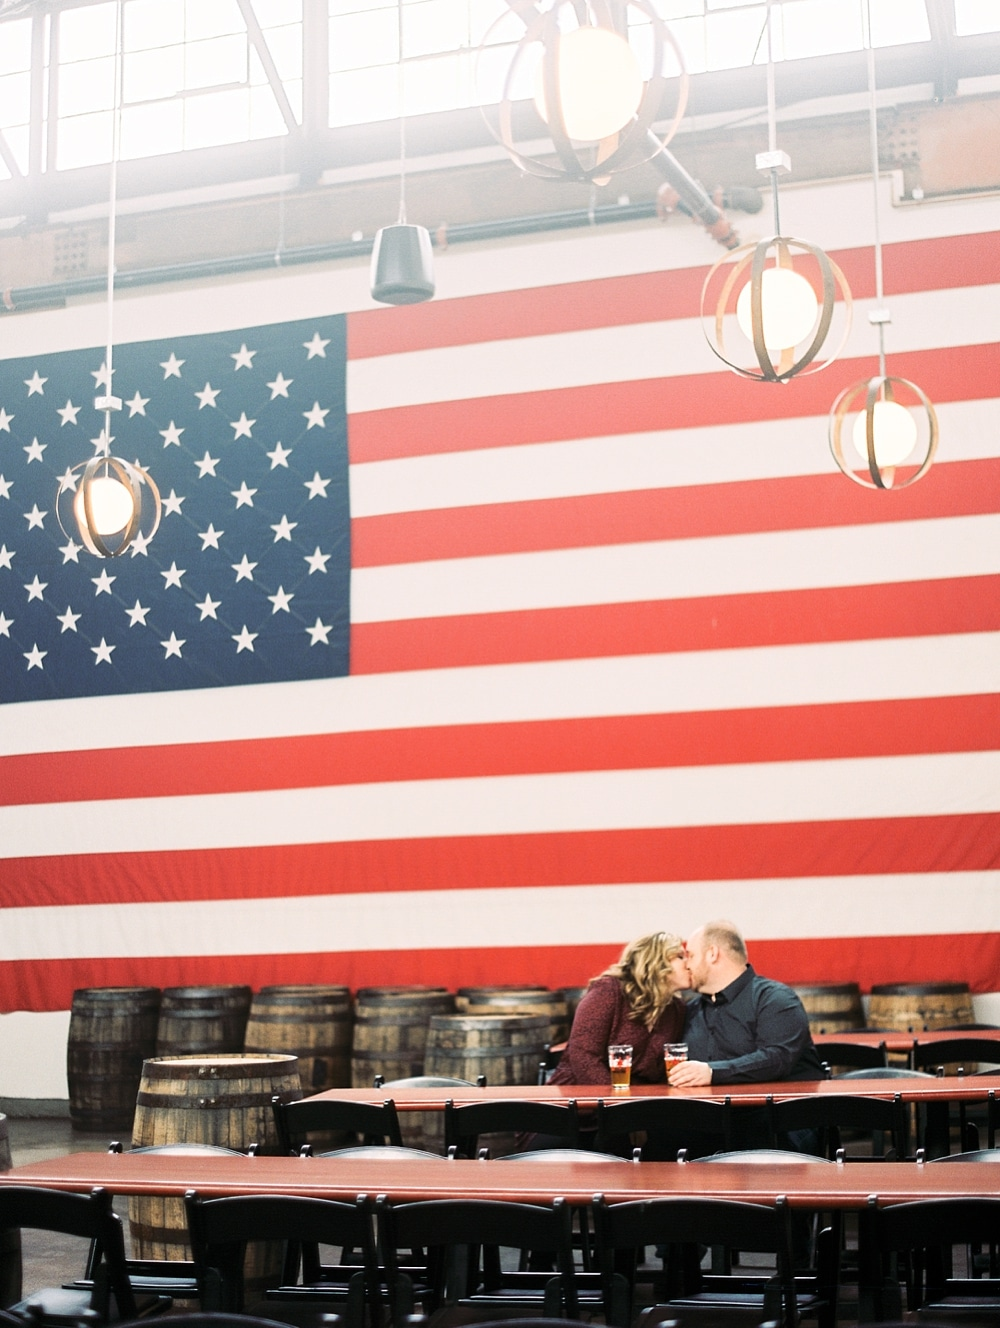 Kristin-La-Voie-Photography-Chicago-Engagement-Revolution-Brewery-14